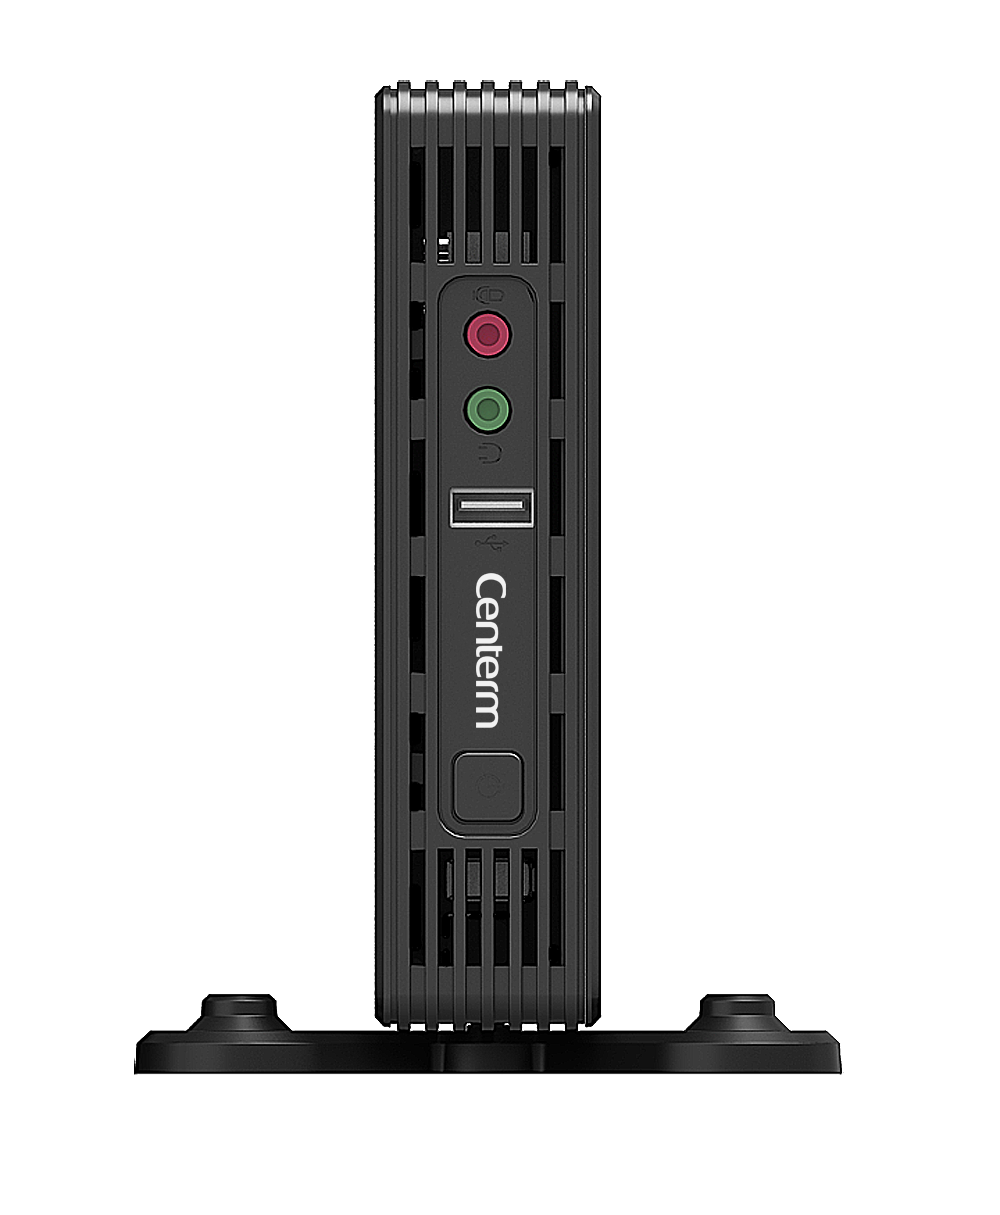 G Series DVI+DVI Front view.png